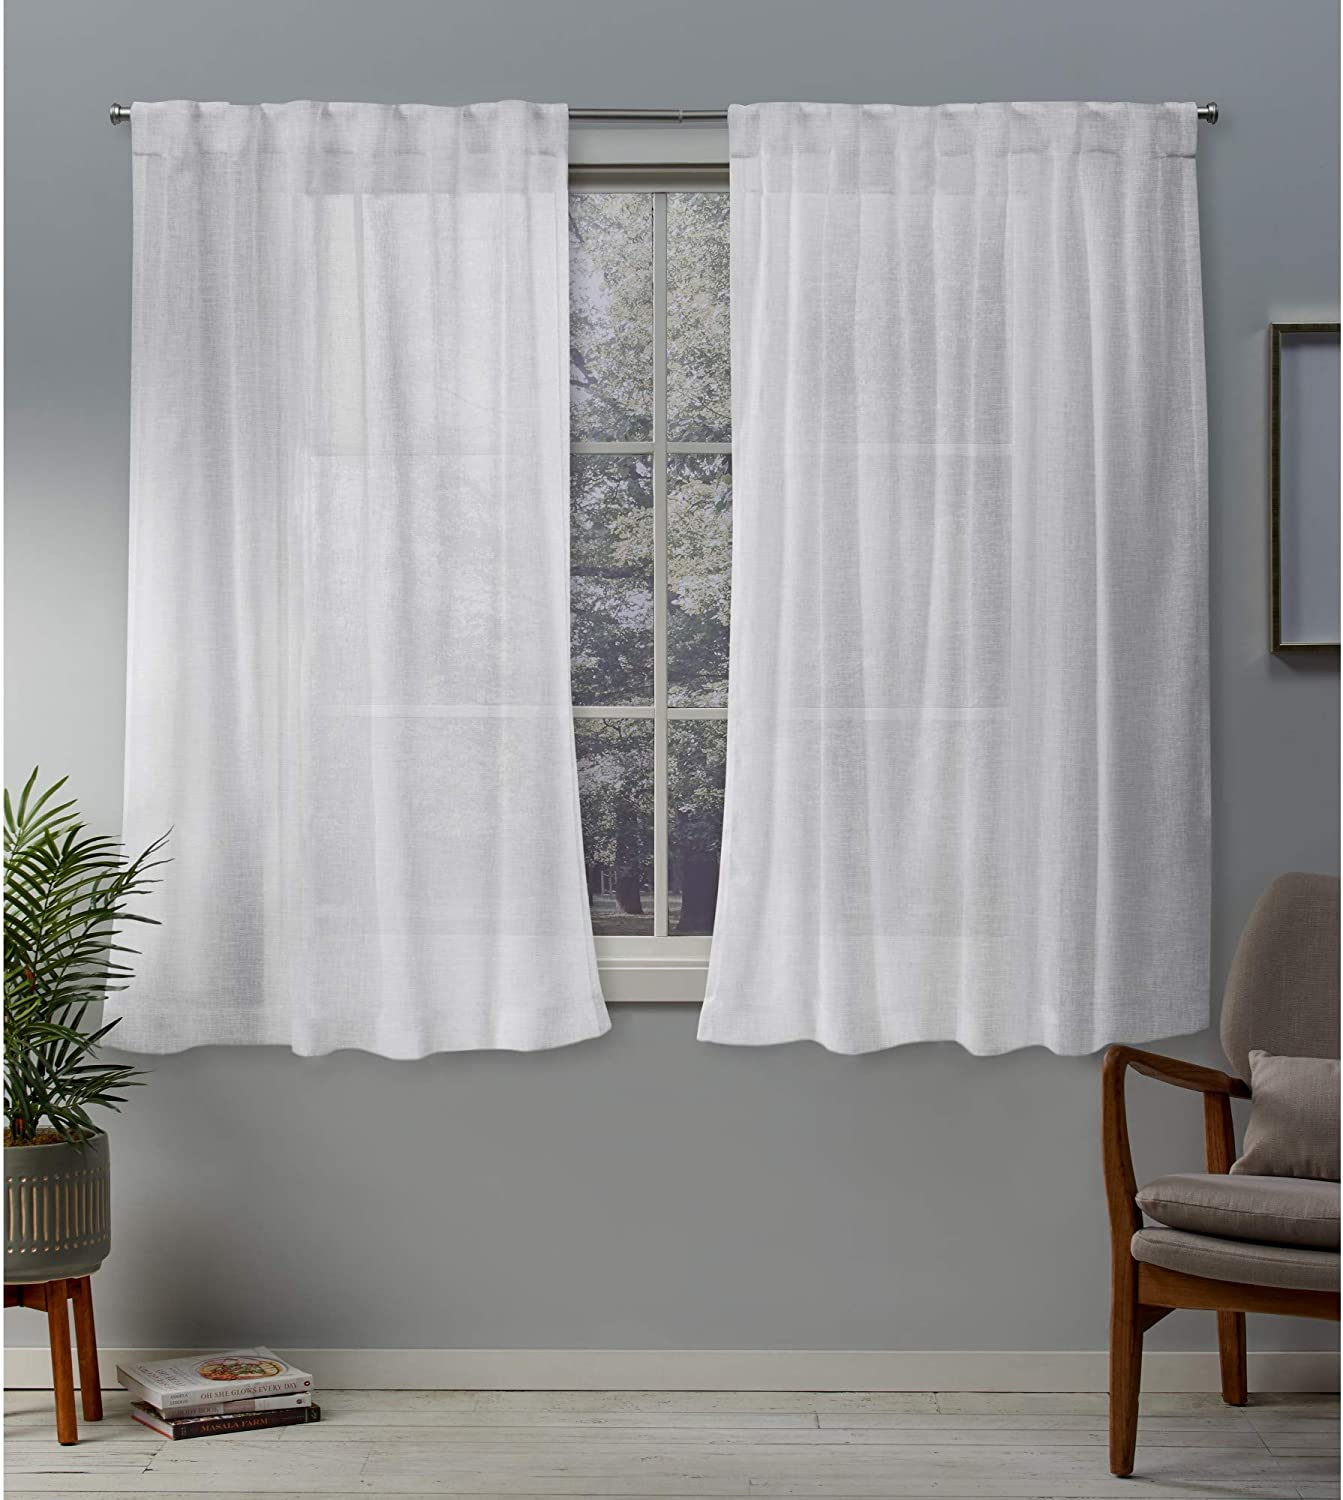 Amazon Com Exclusive Home Curtains Belgian Textured Linen Look Jacquard Sheer Hidden Tab Top Curtain Panel Pair 50x63 White Home Kitchen